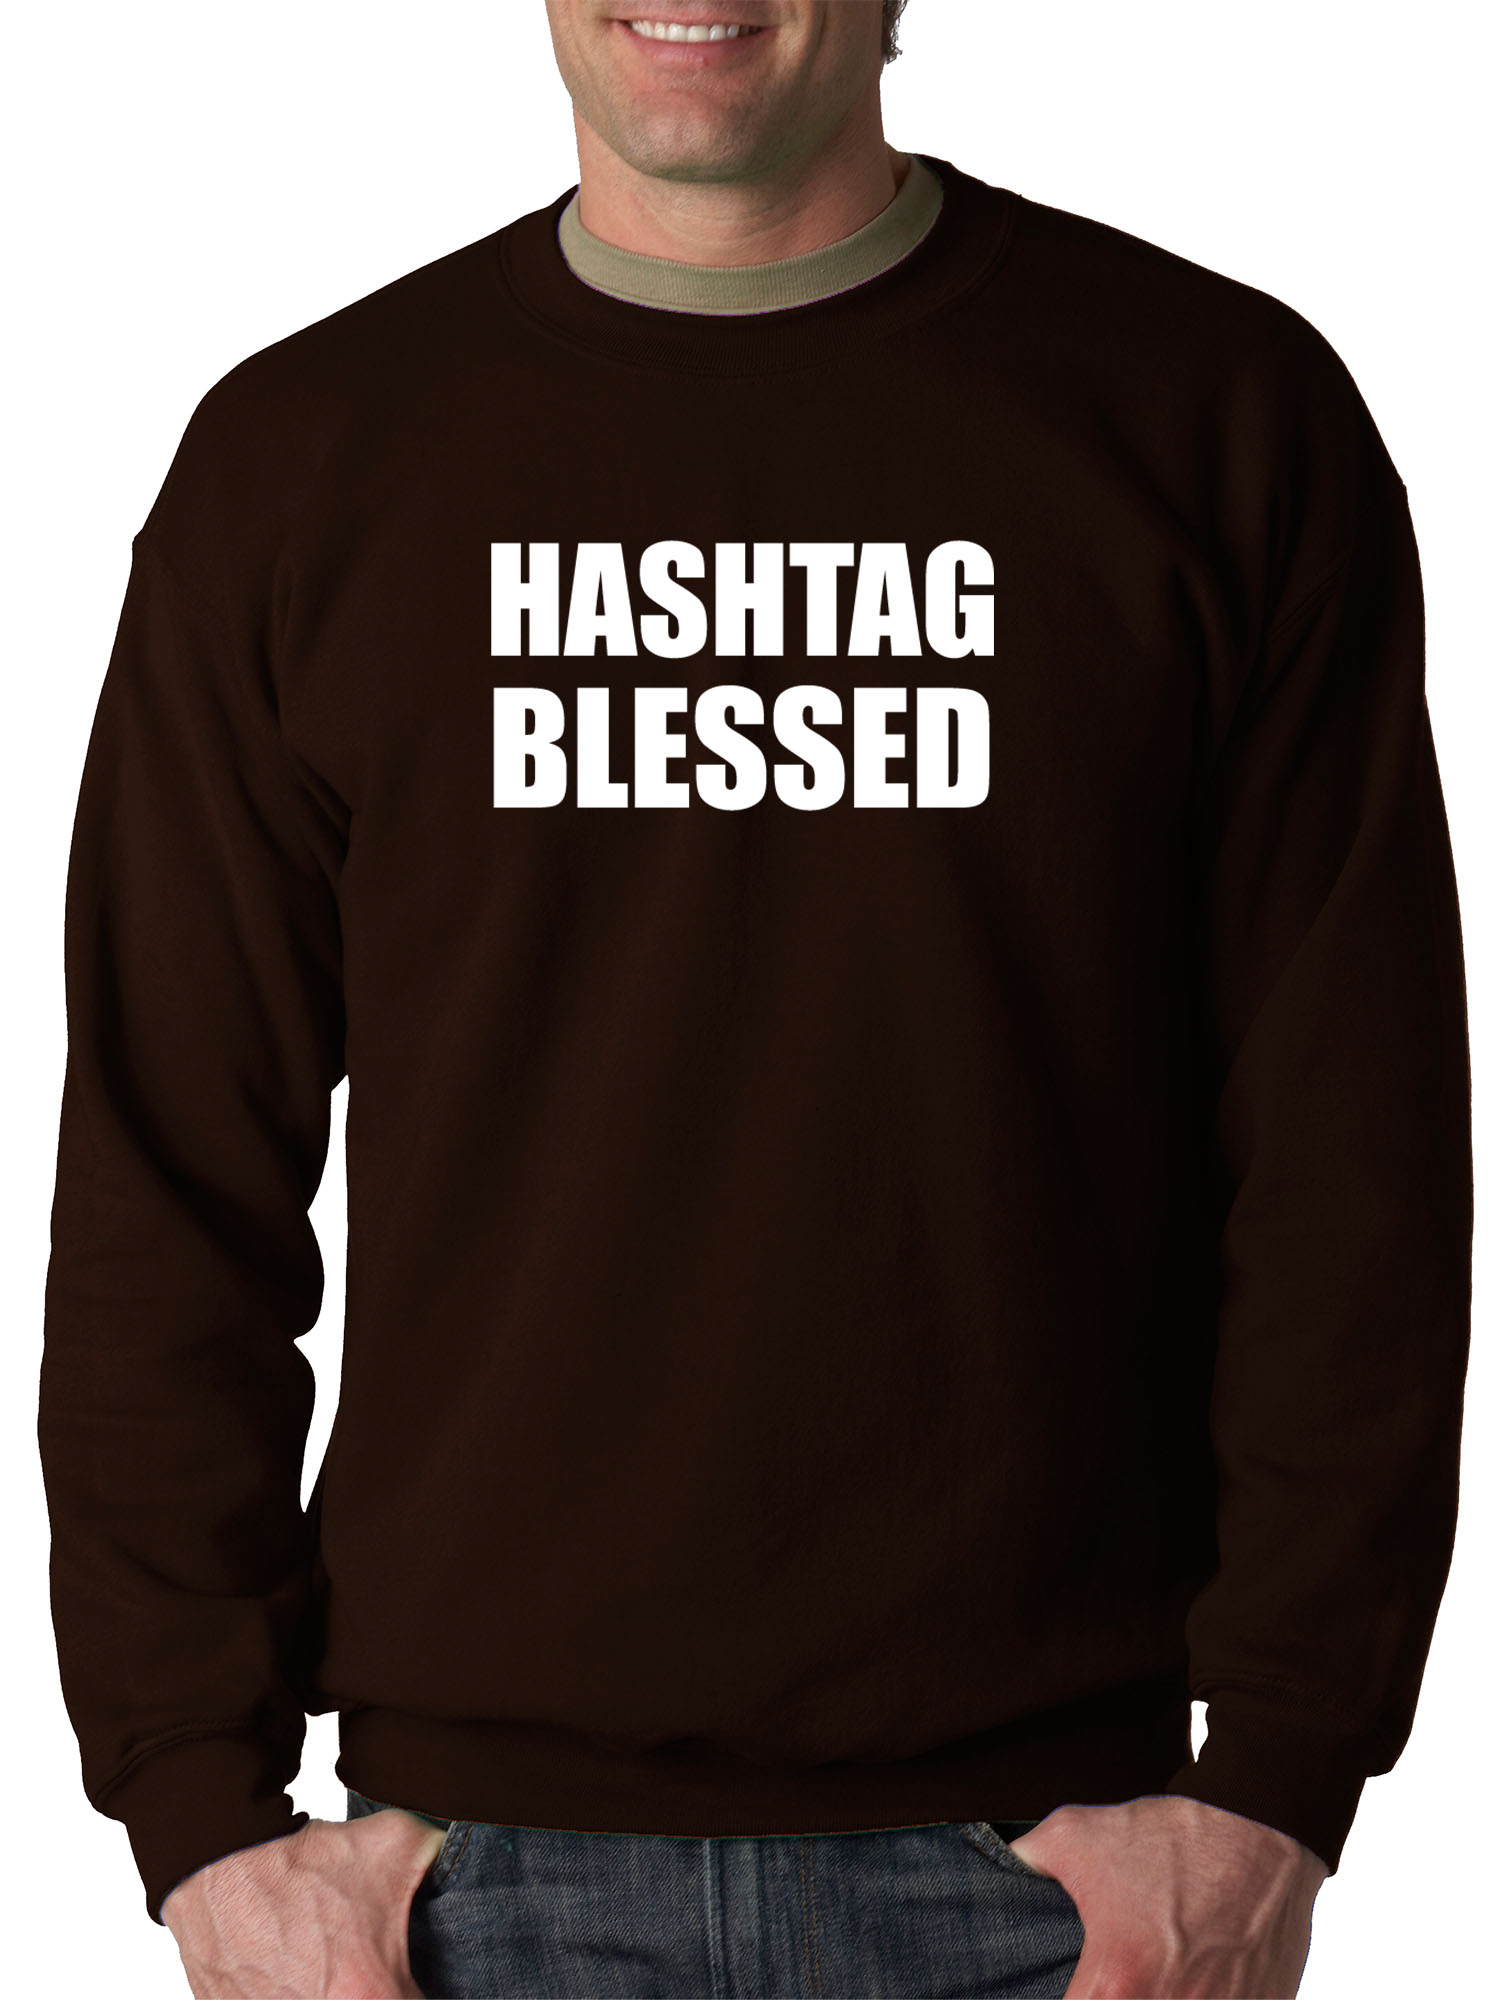 25+ Best Memes About Blessed | Blessed Memes  |Blessed Meme